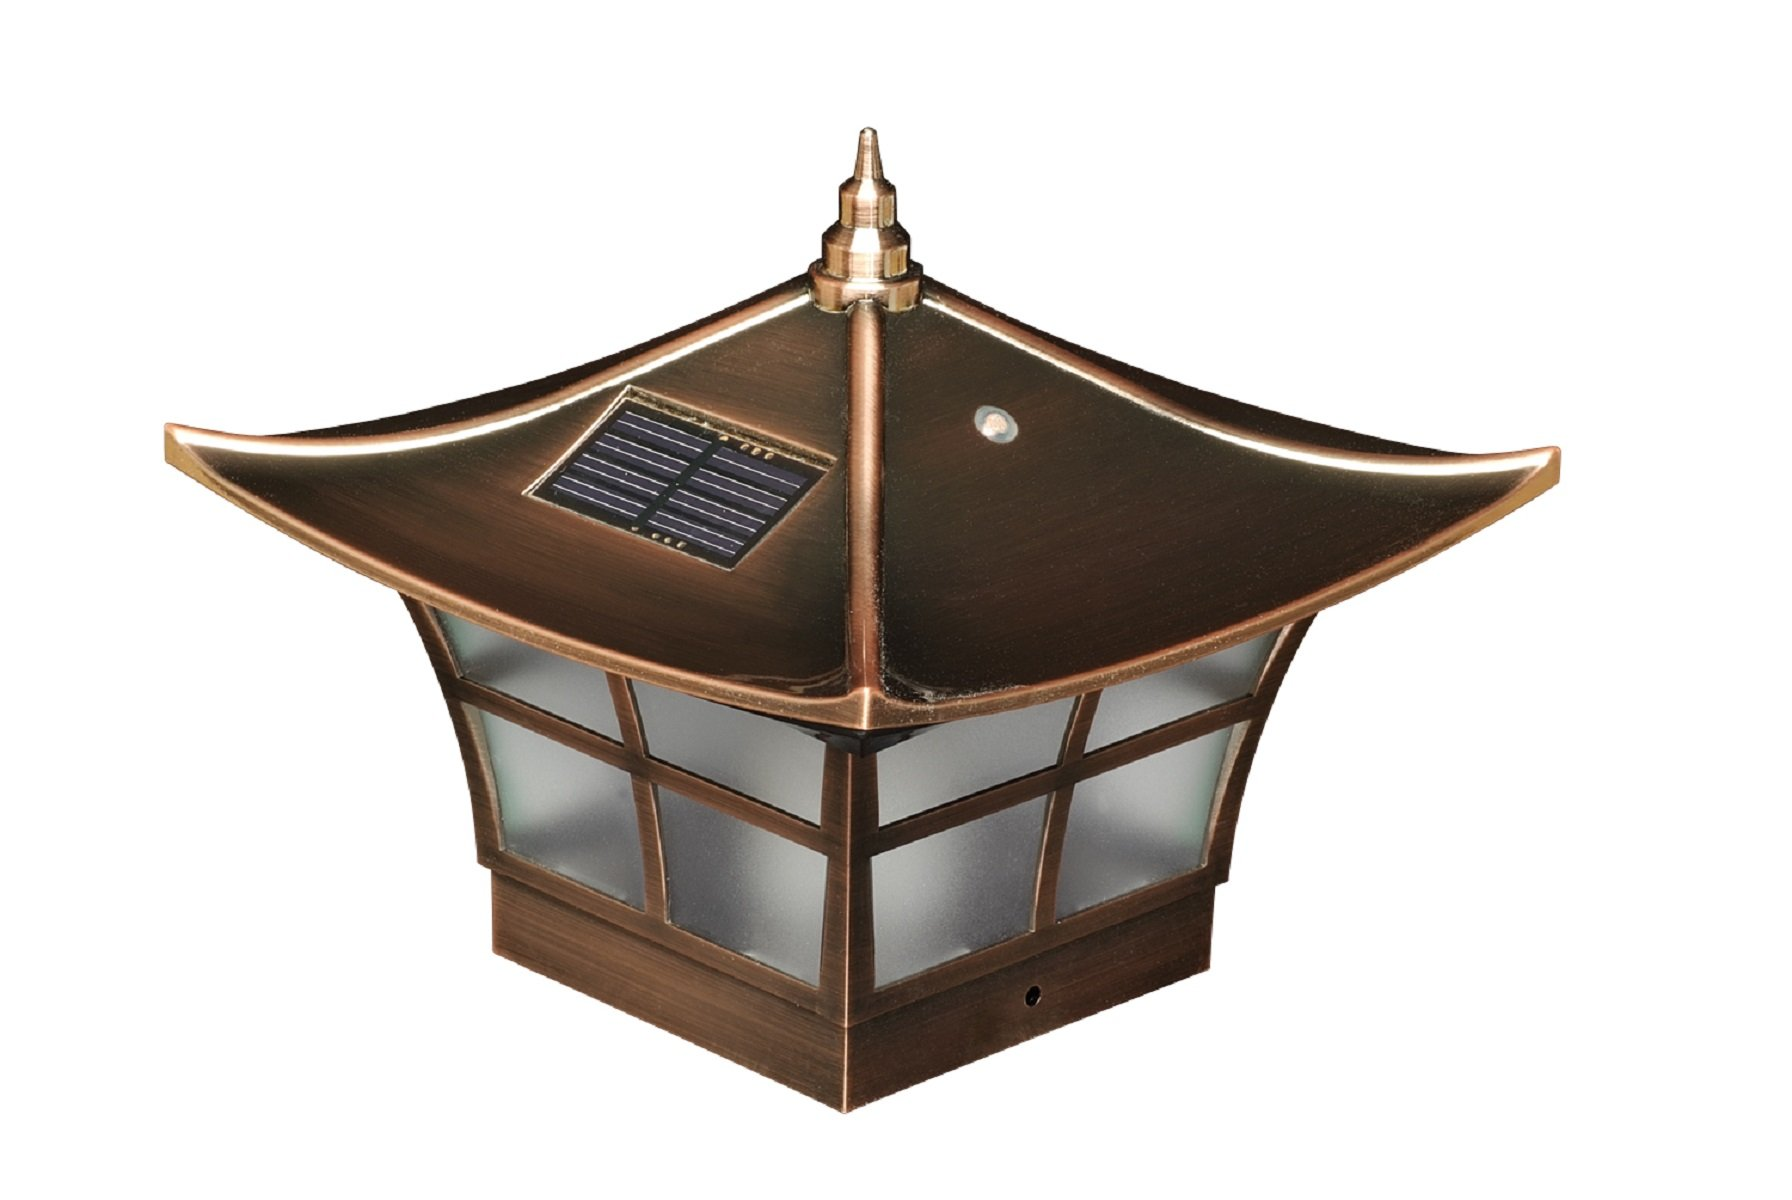 Classy Caps SL094 Copper Plated Ambience Solar Post Cap for 4'' x 4'' (3.5'' X 3.5'' adapter included) fence posts with LED warm flickering candle effect. Durable weather resistant design won't fade over time.